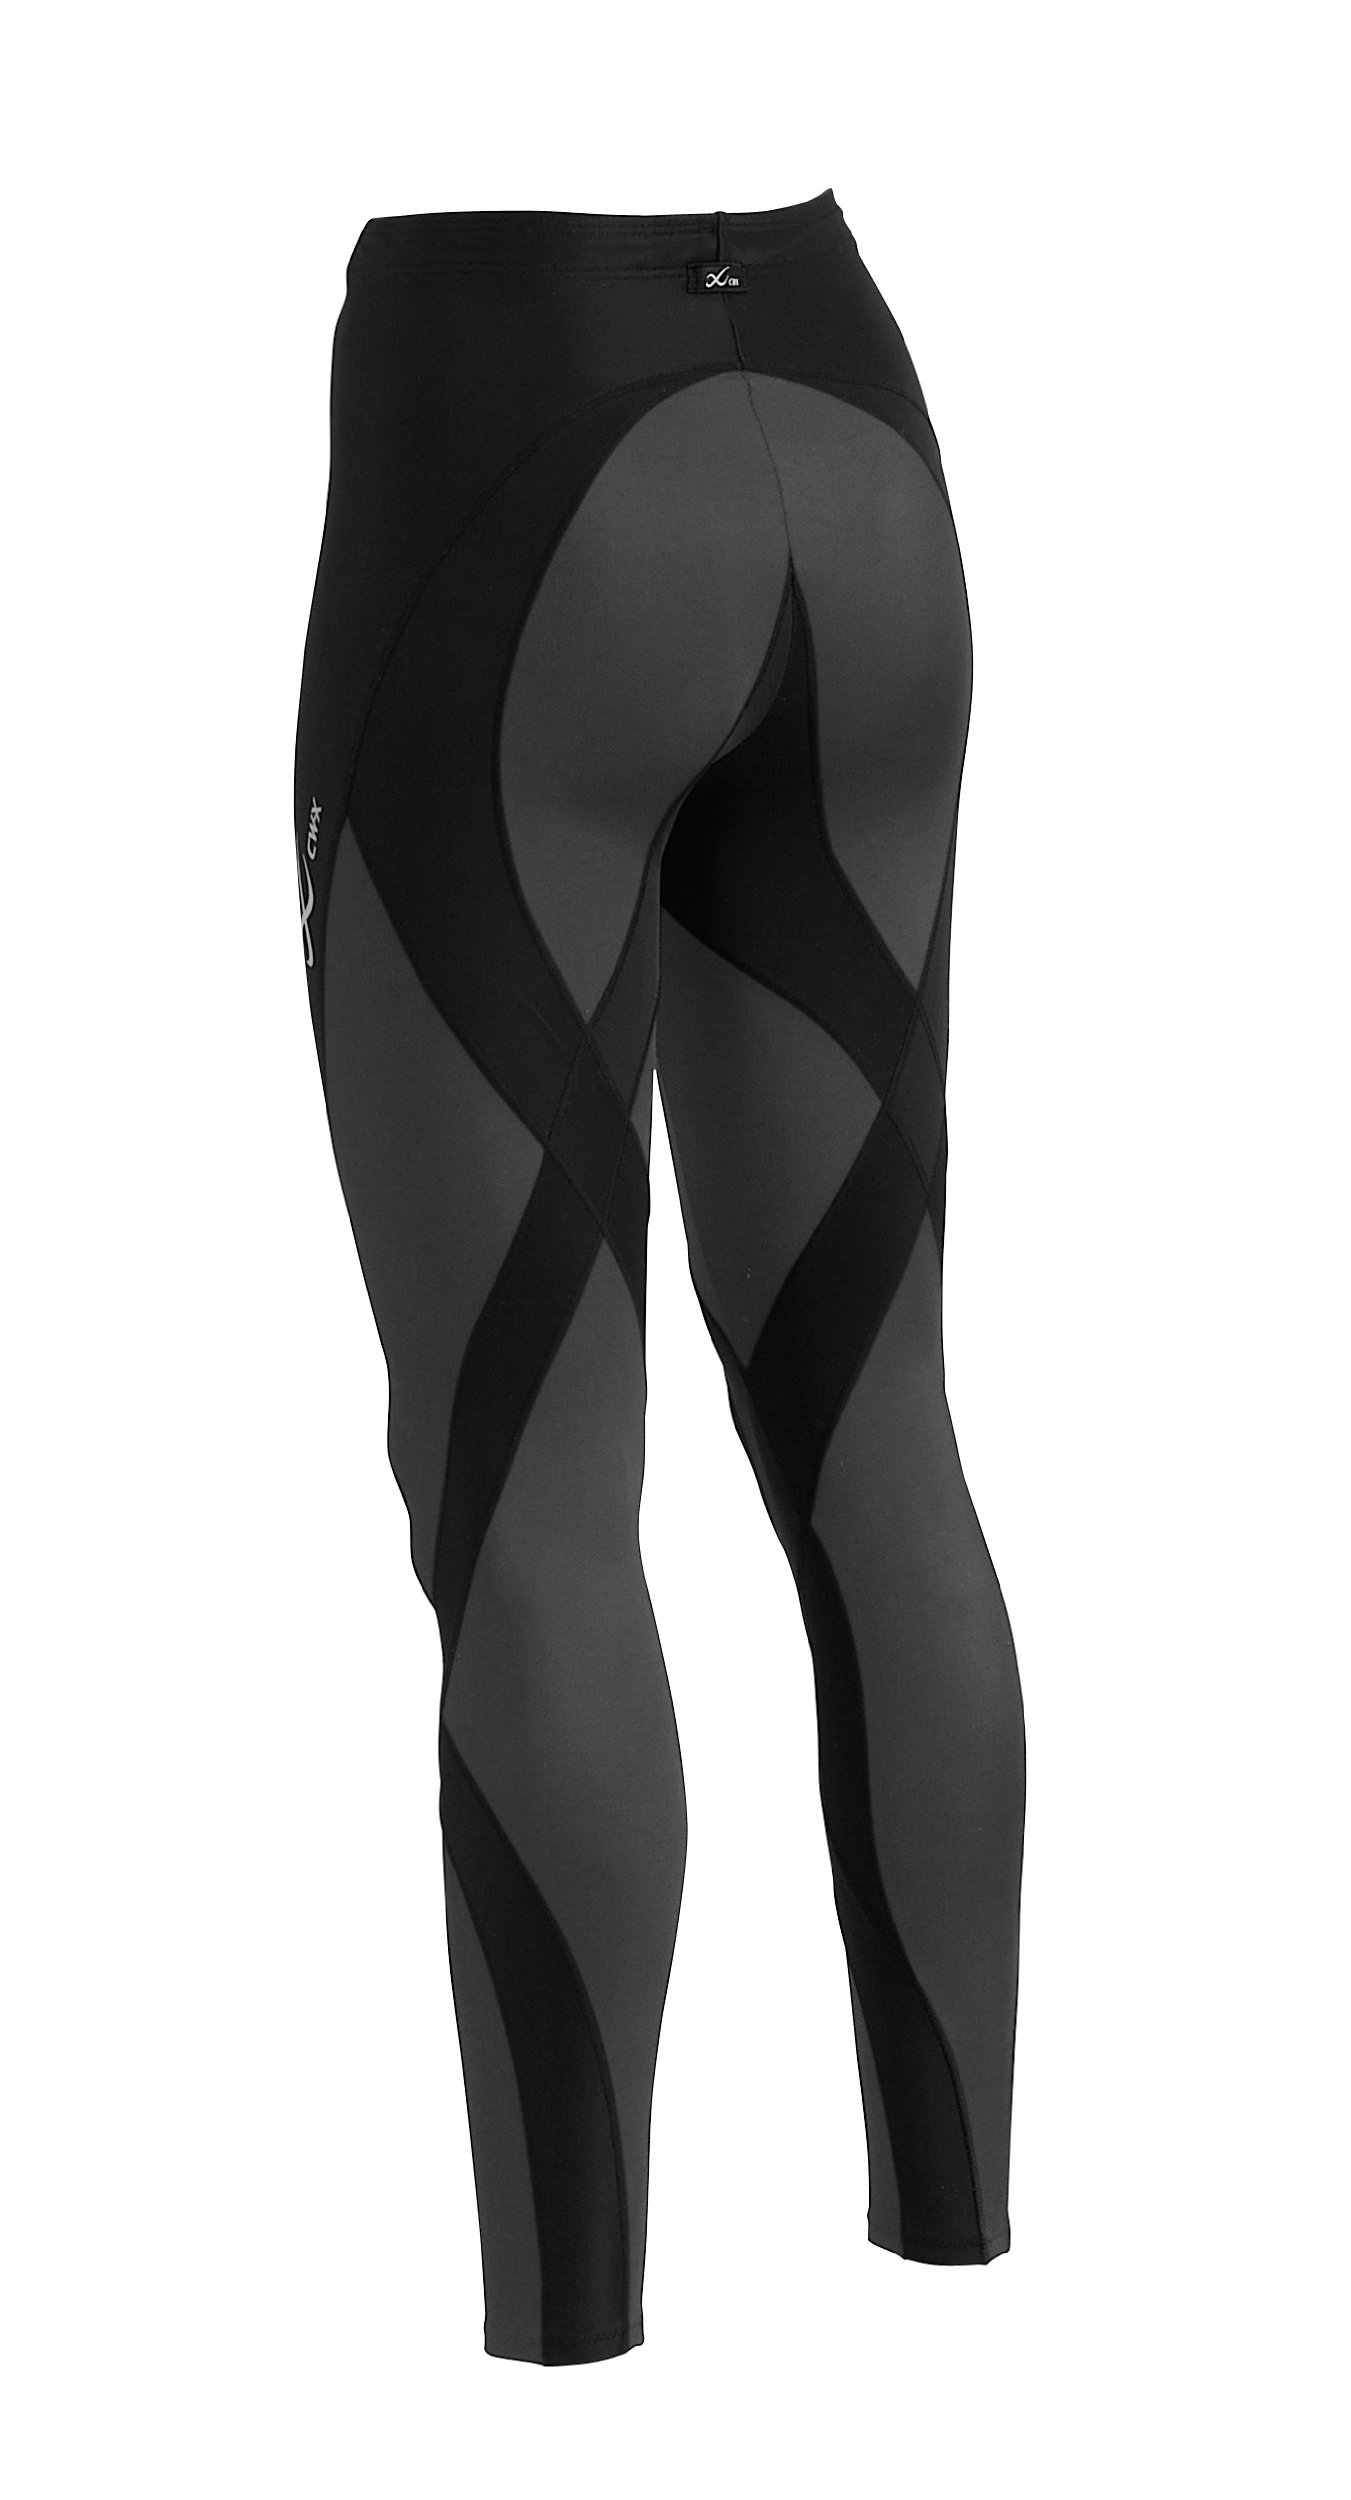 CW-X Women's Pro Running Tights,Black,Large by CW-X (Image #2)